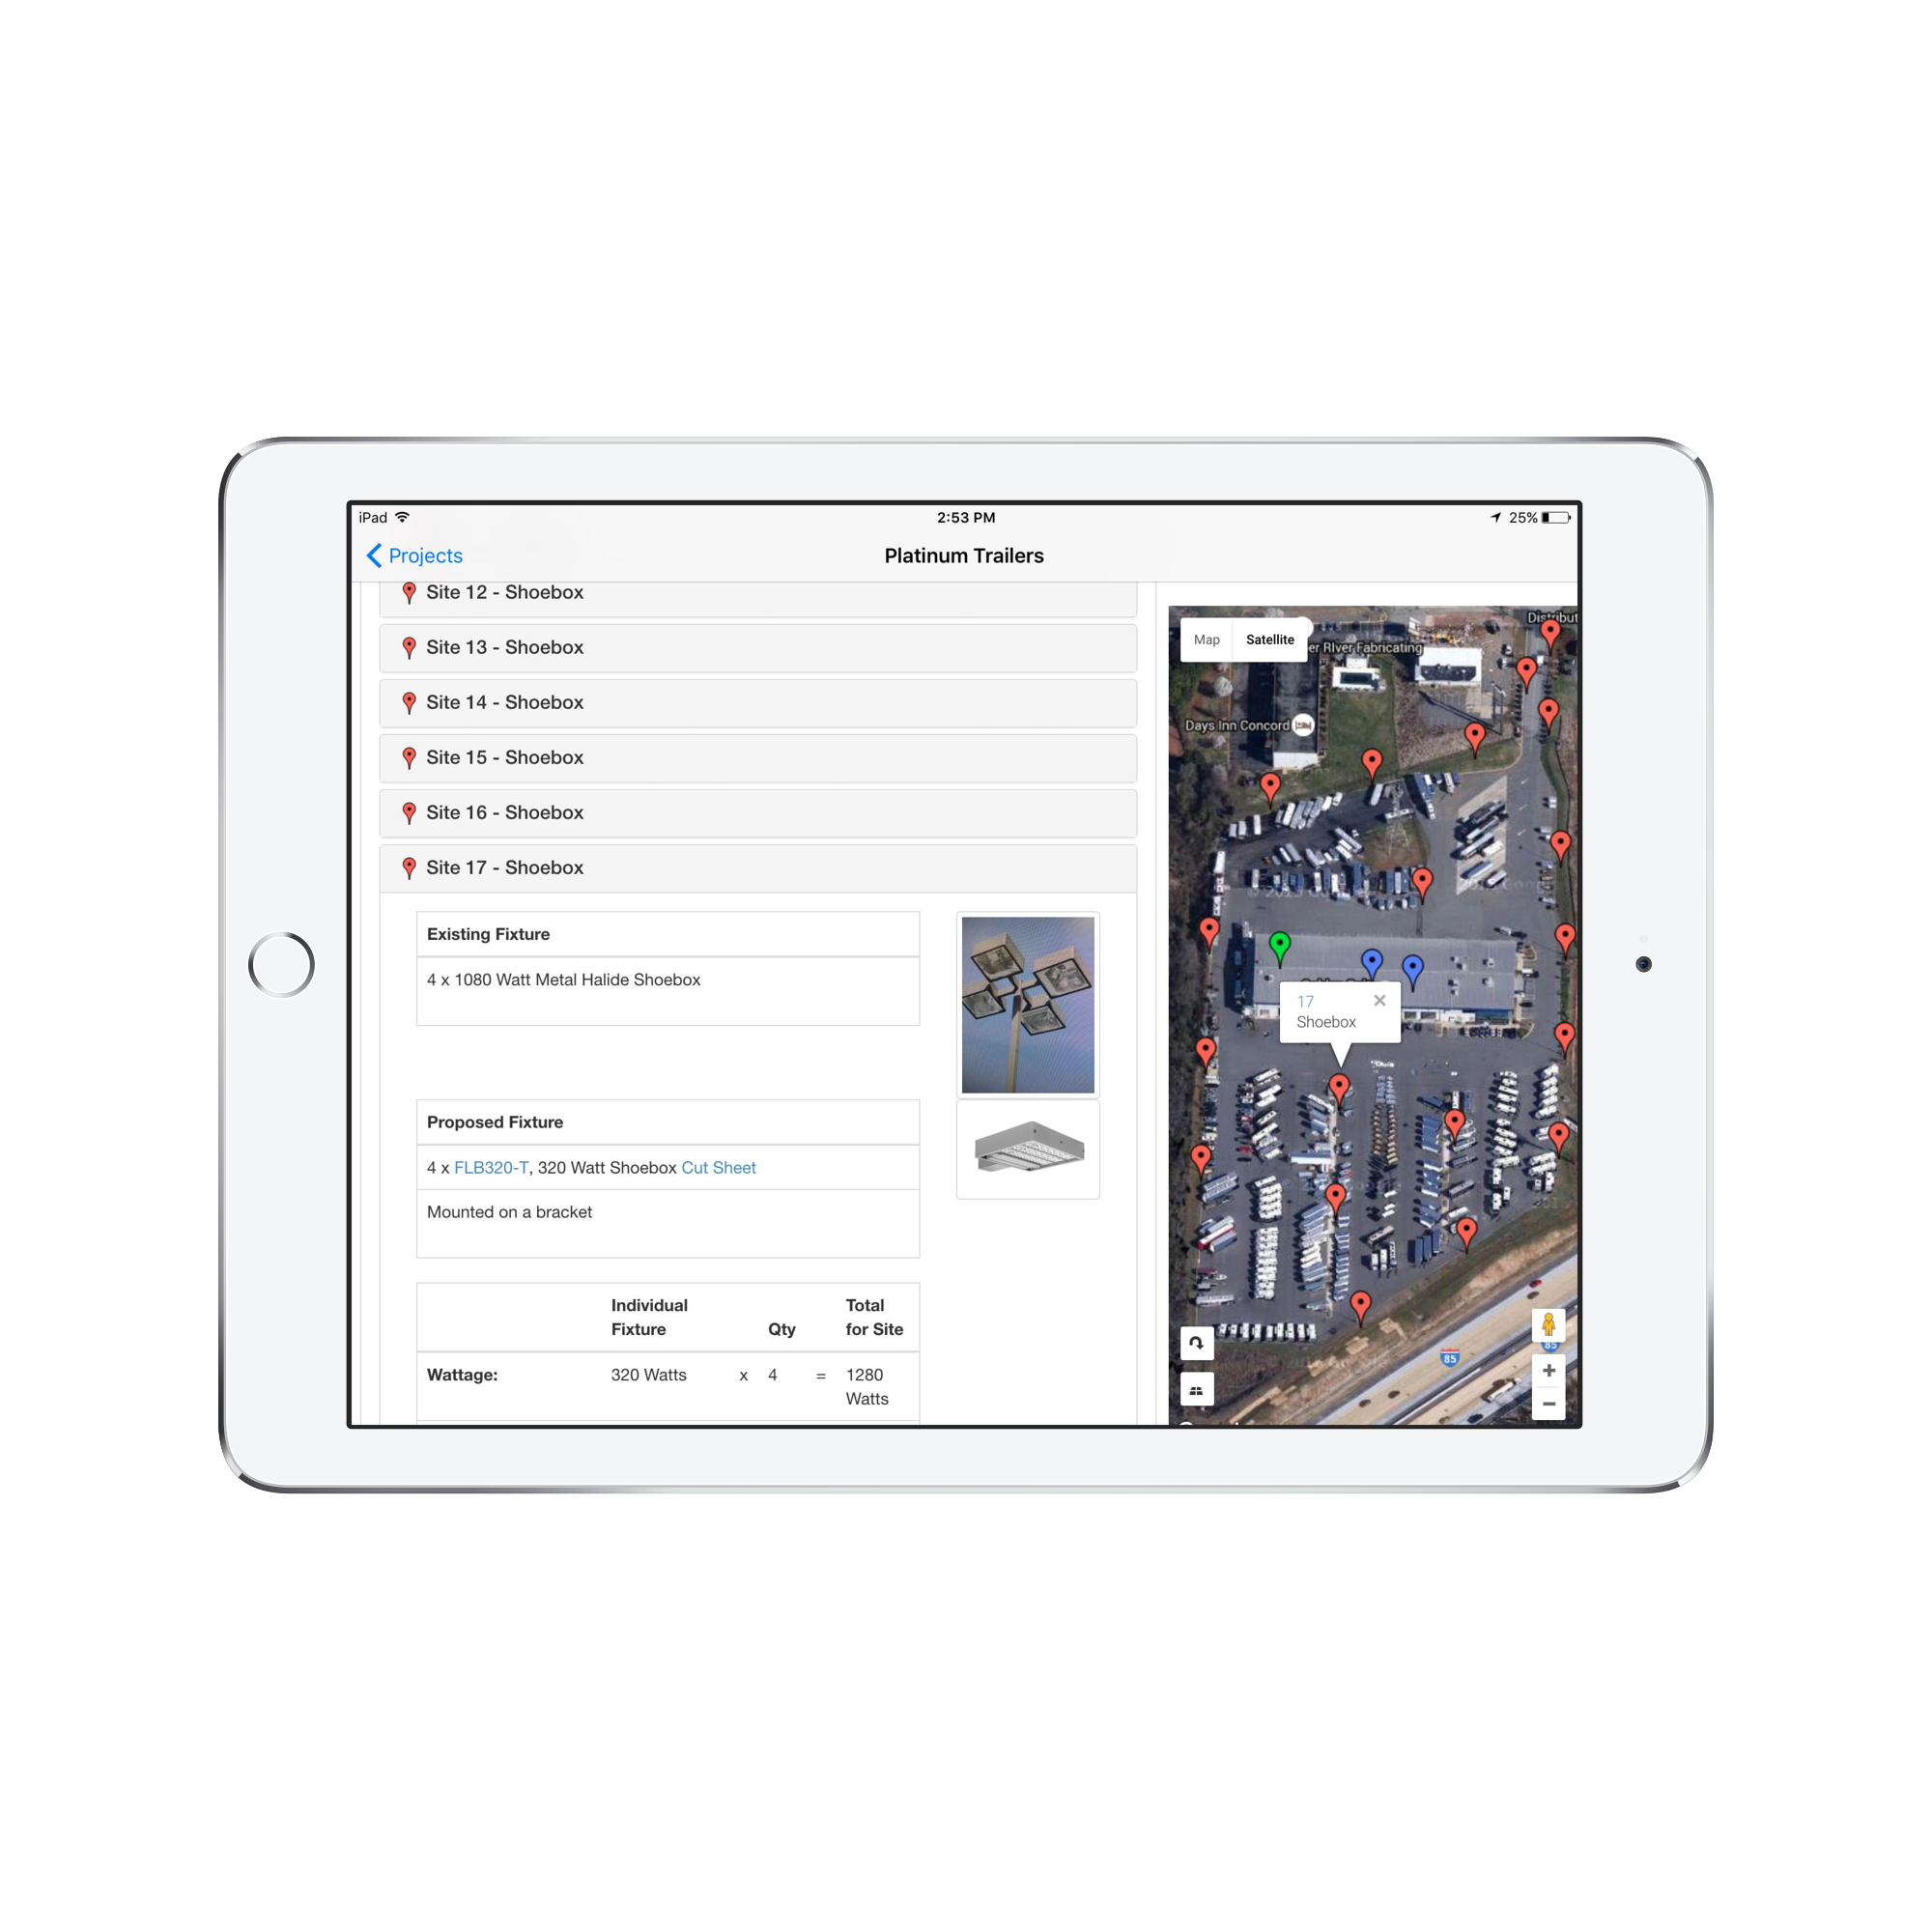 SiteLite iPad LED auditing and mobile sales app quote view